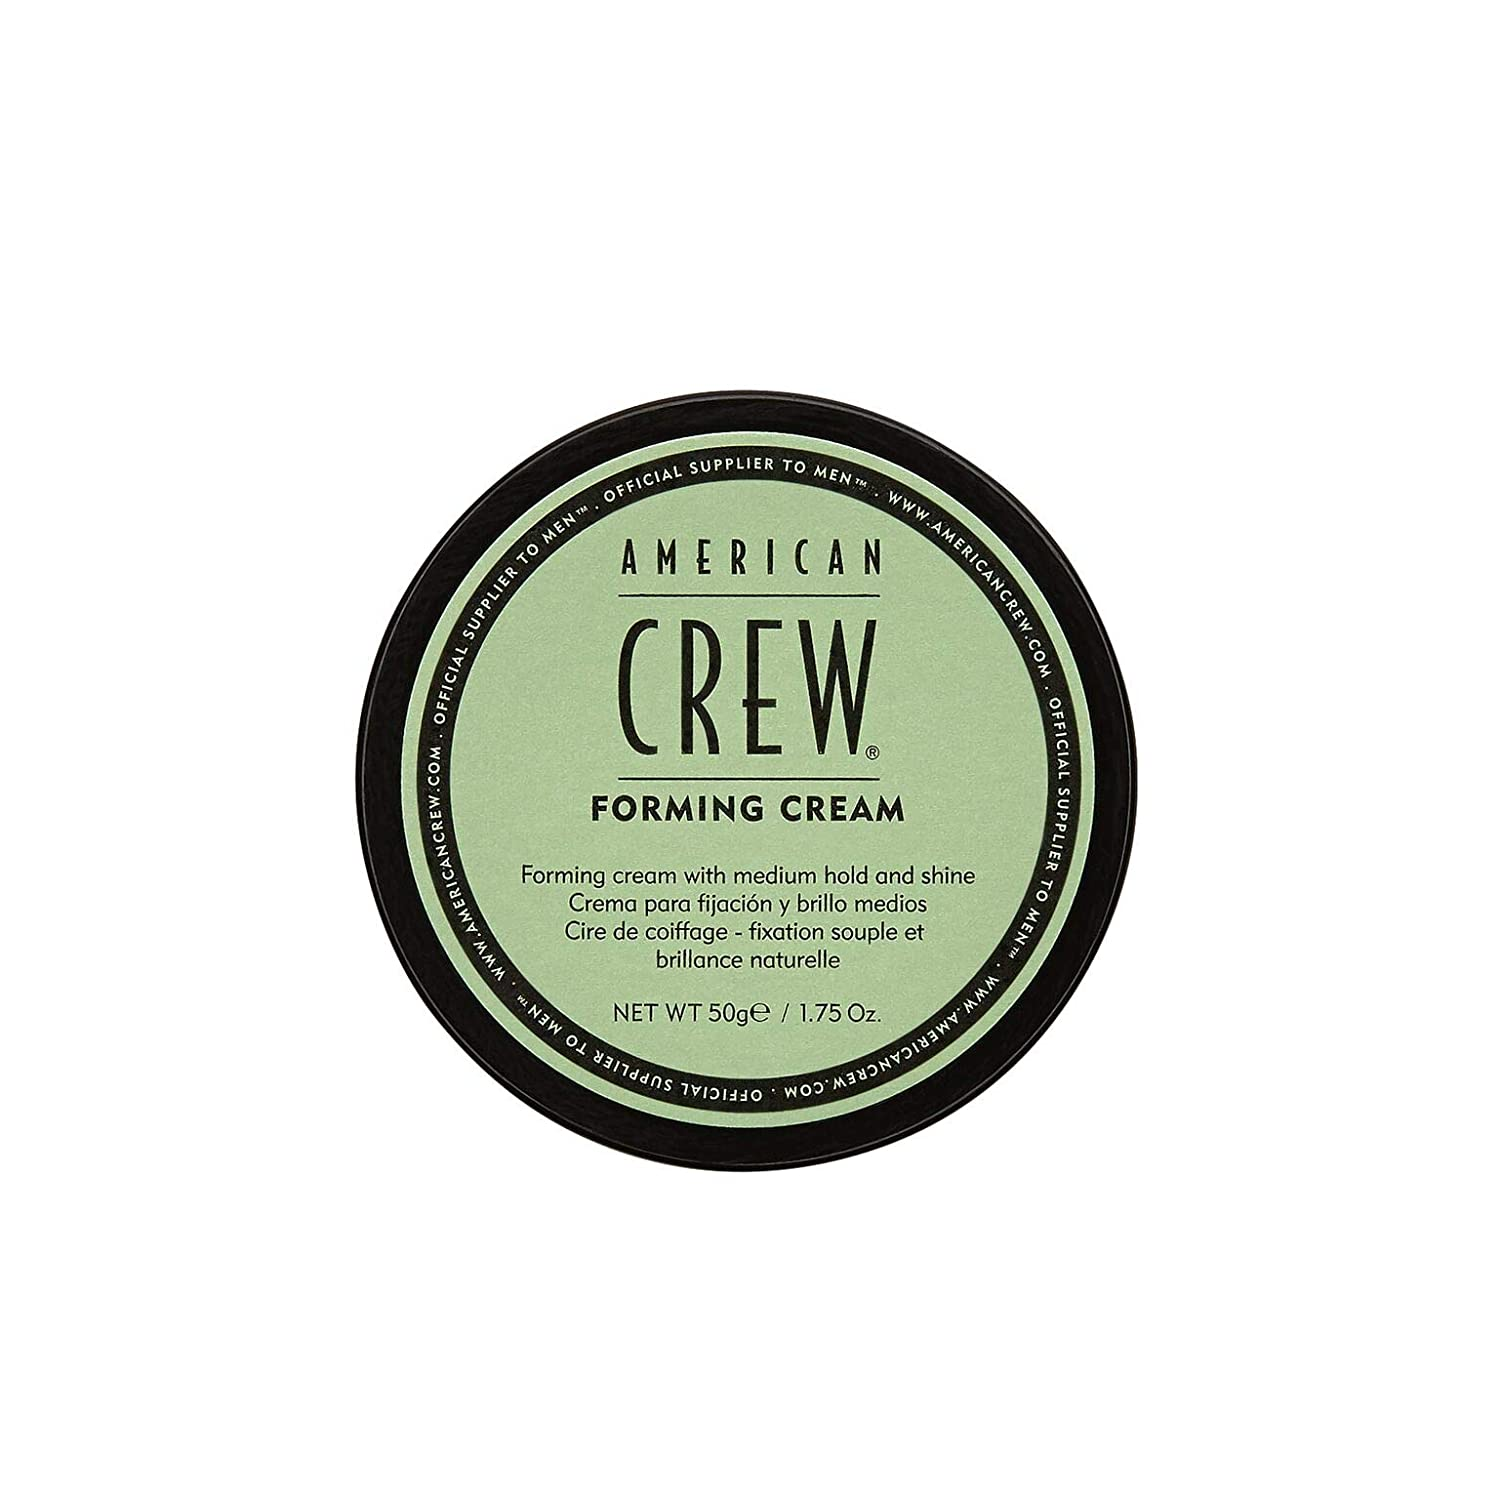 American Crew Forming Creme For Men, 3 Oz Revlon Professional 110017 C-AM-003-85